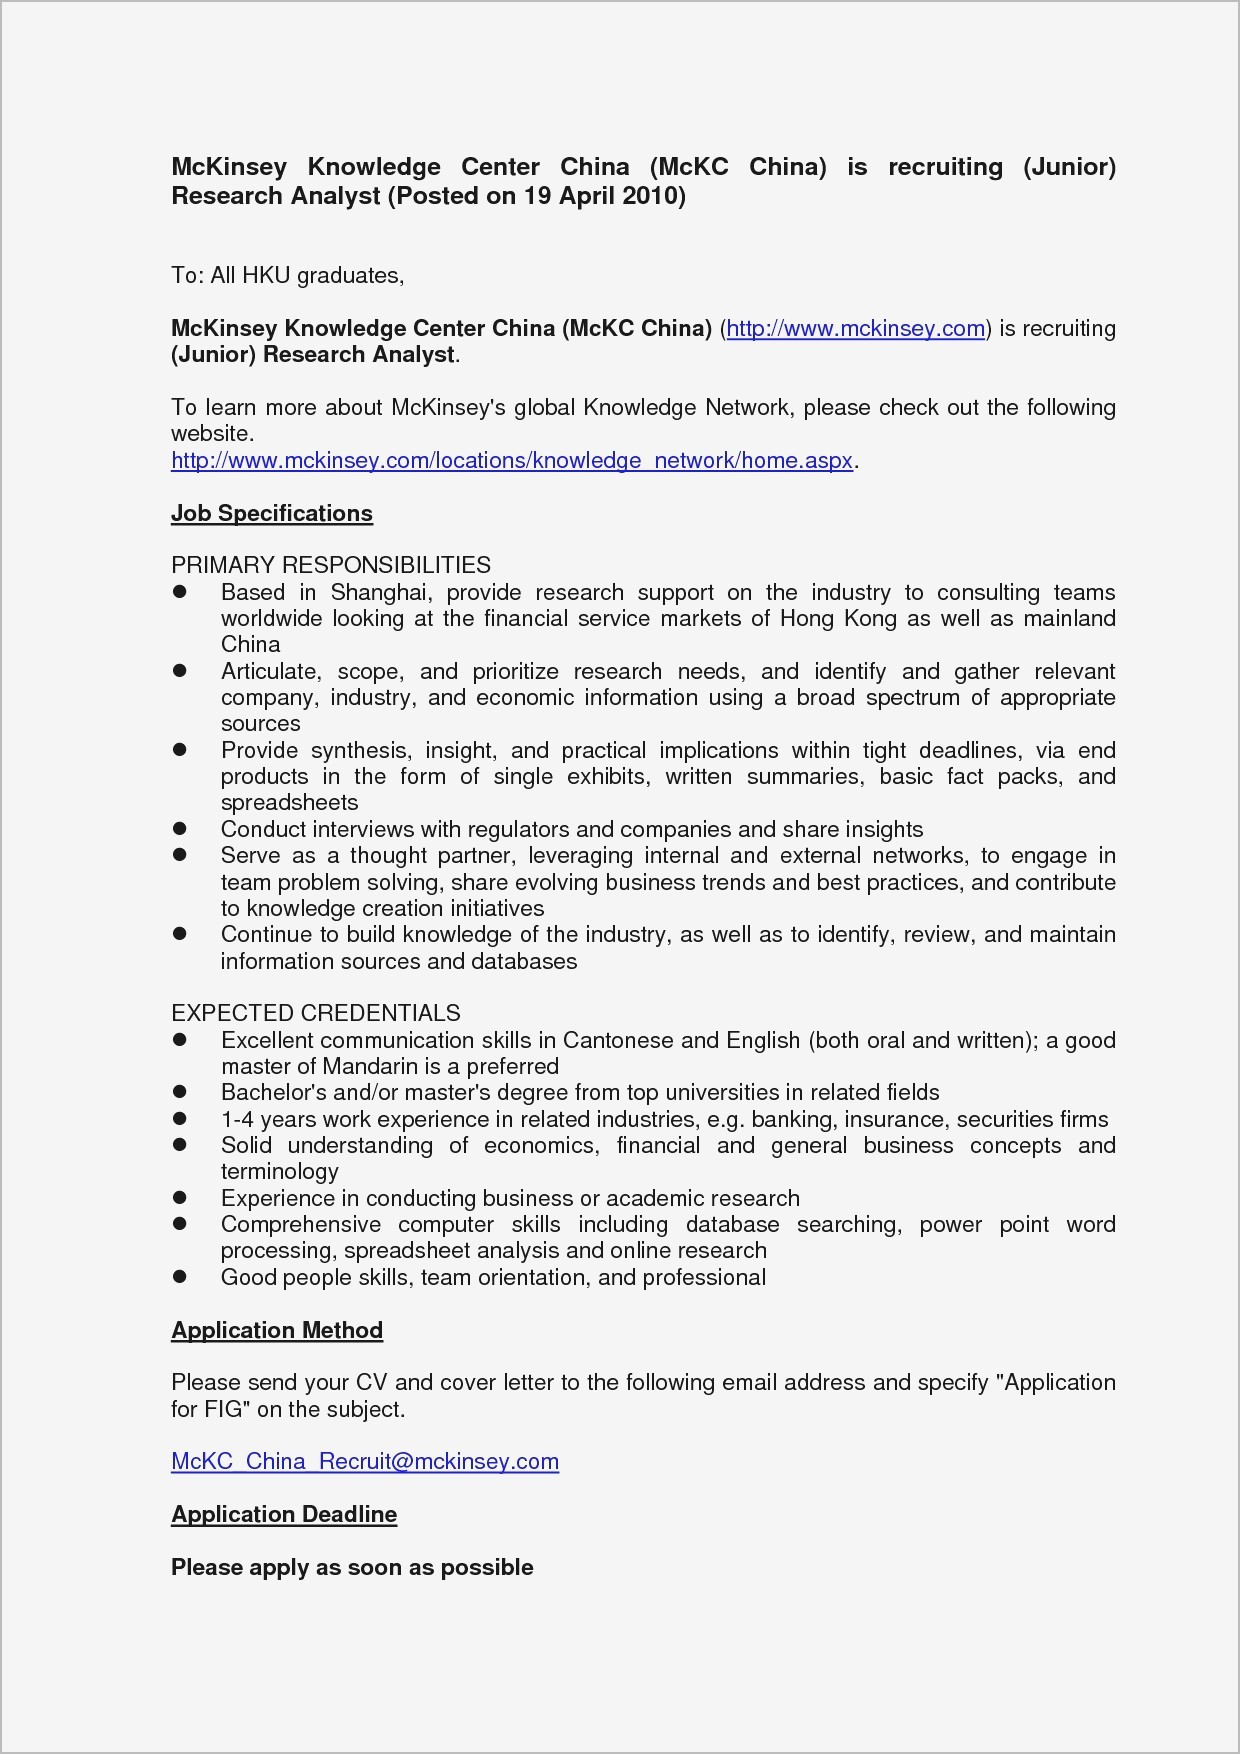 Letter Of Introduction Template - Business bylaws Template Inspirationa New Business Introduction